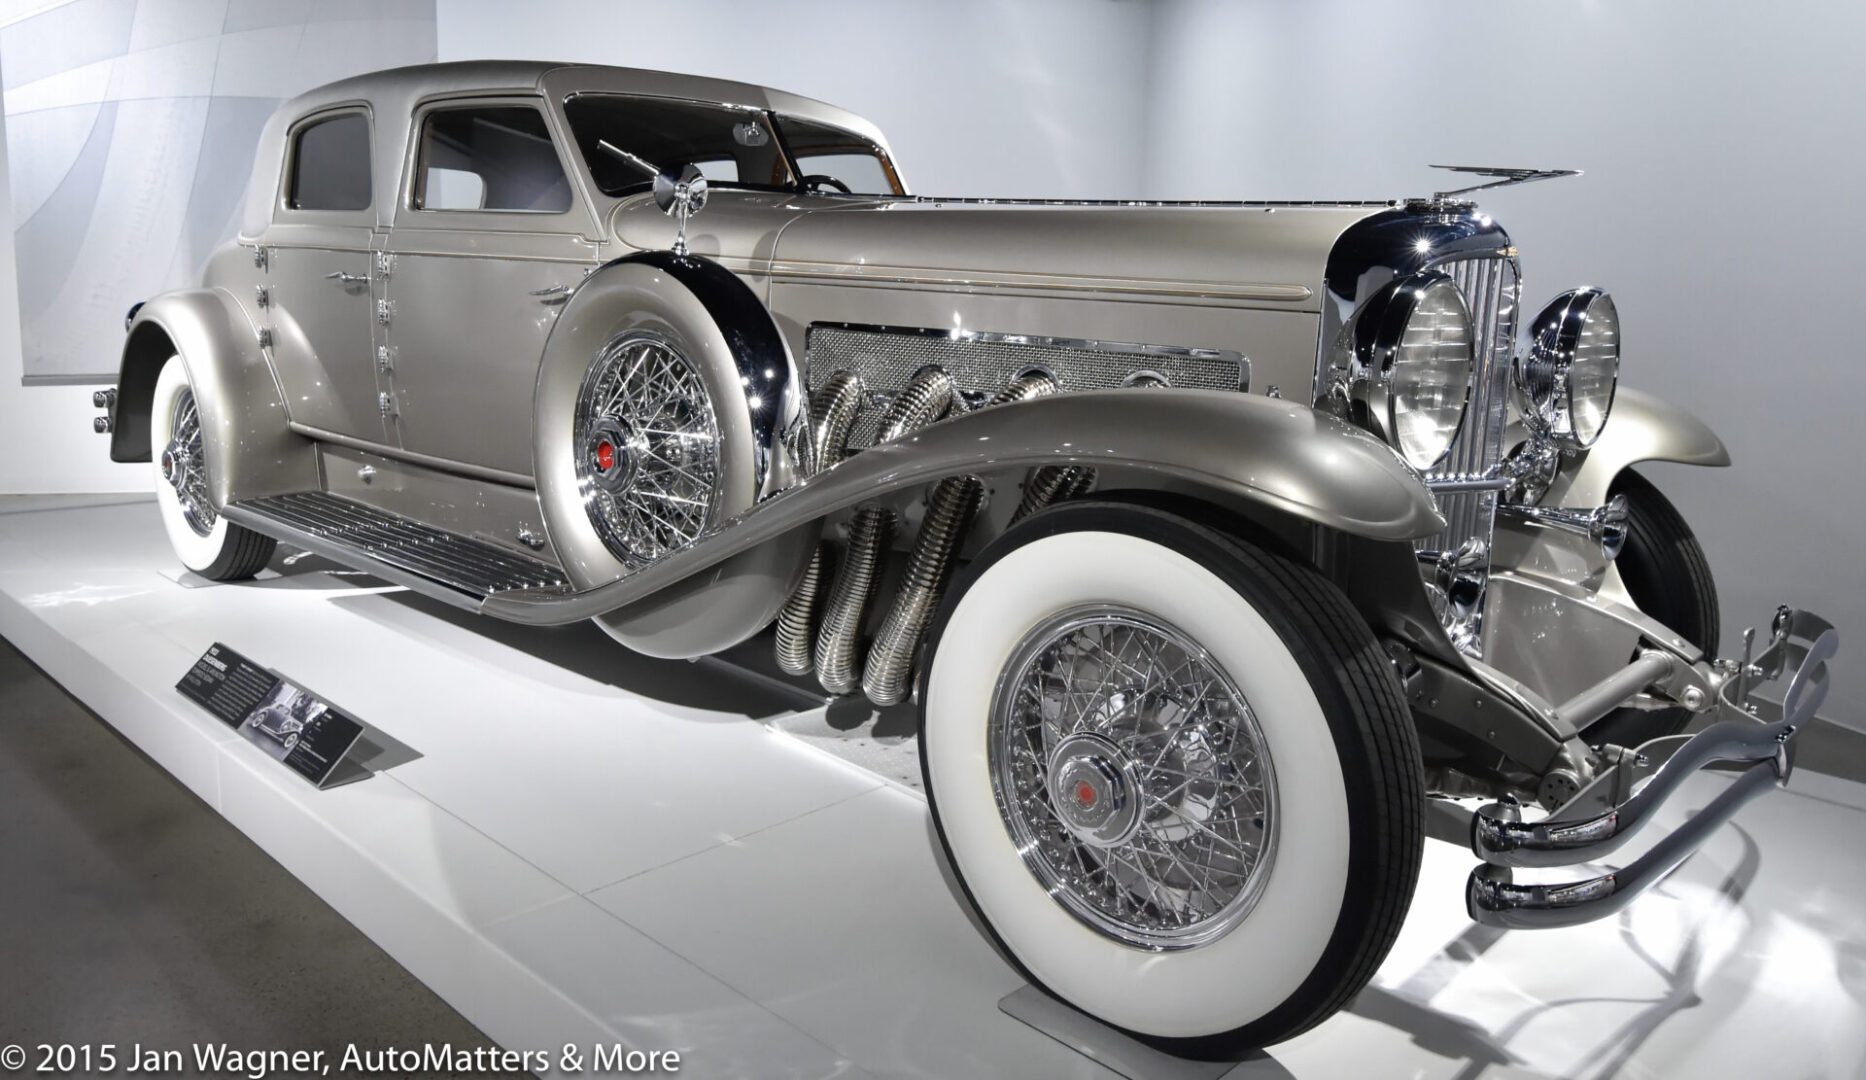 01289-20151203 Petersen Automotive Museum-Grand Reopening-Media Day-Los Angeles-15-30mm-D4s-2of2